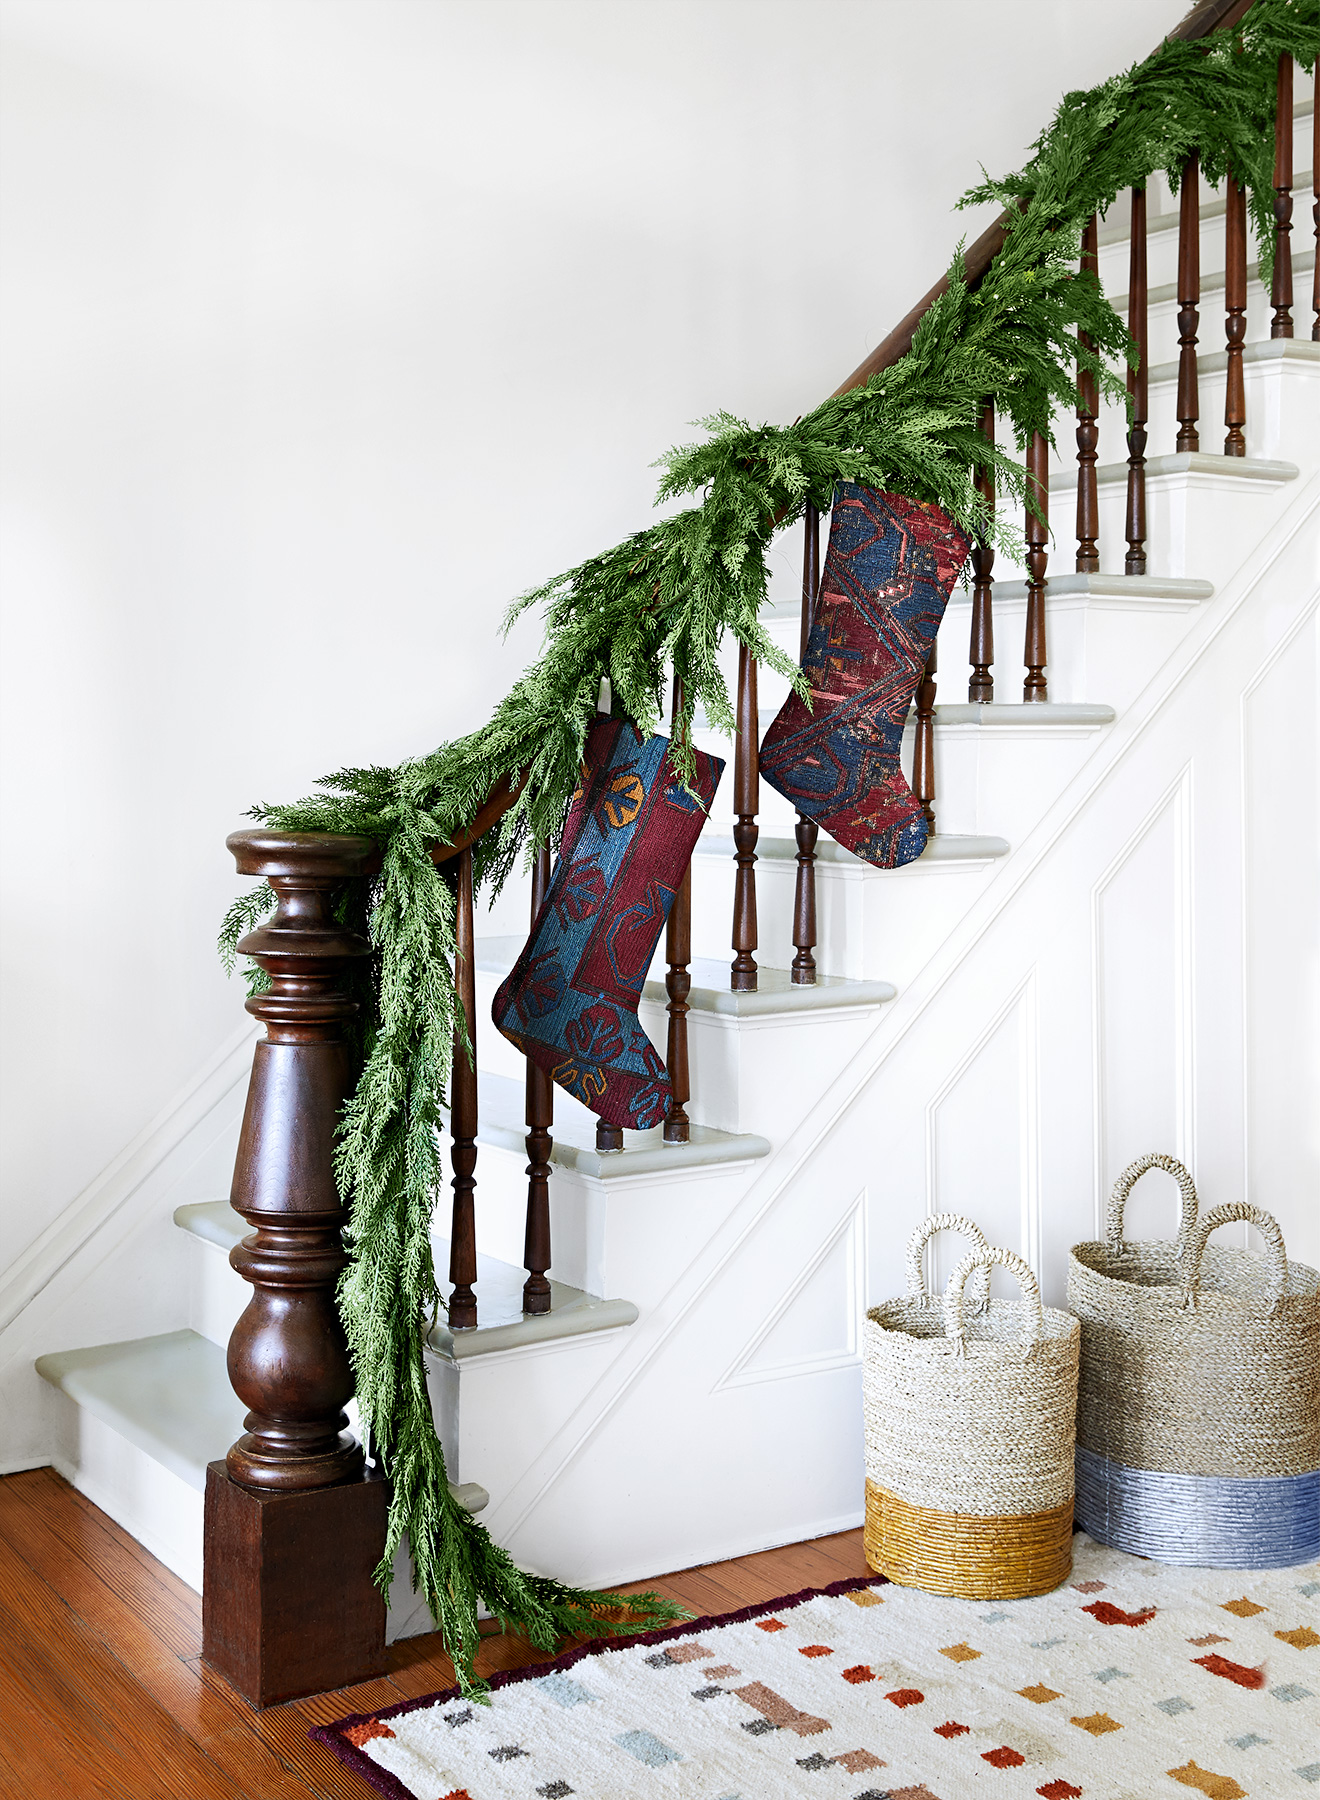 Christmas decoration ideas - Stockinged Stairwell